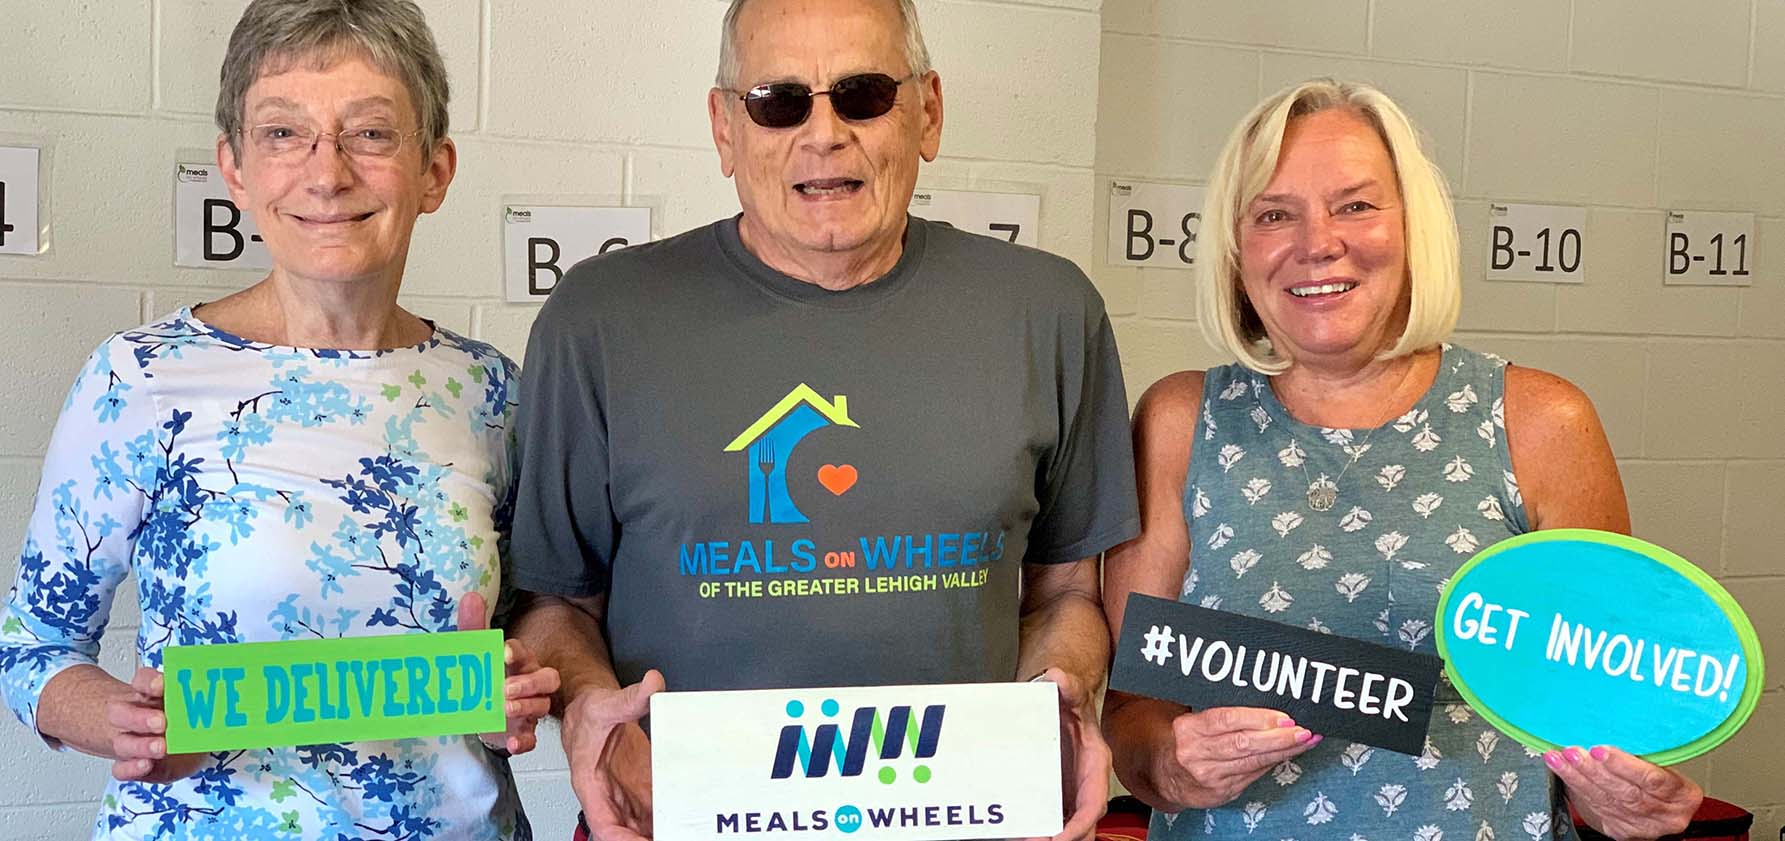 Three volunteers from Meals on Wheels of the Greater Lehigh Valley